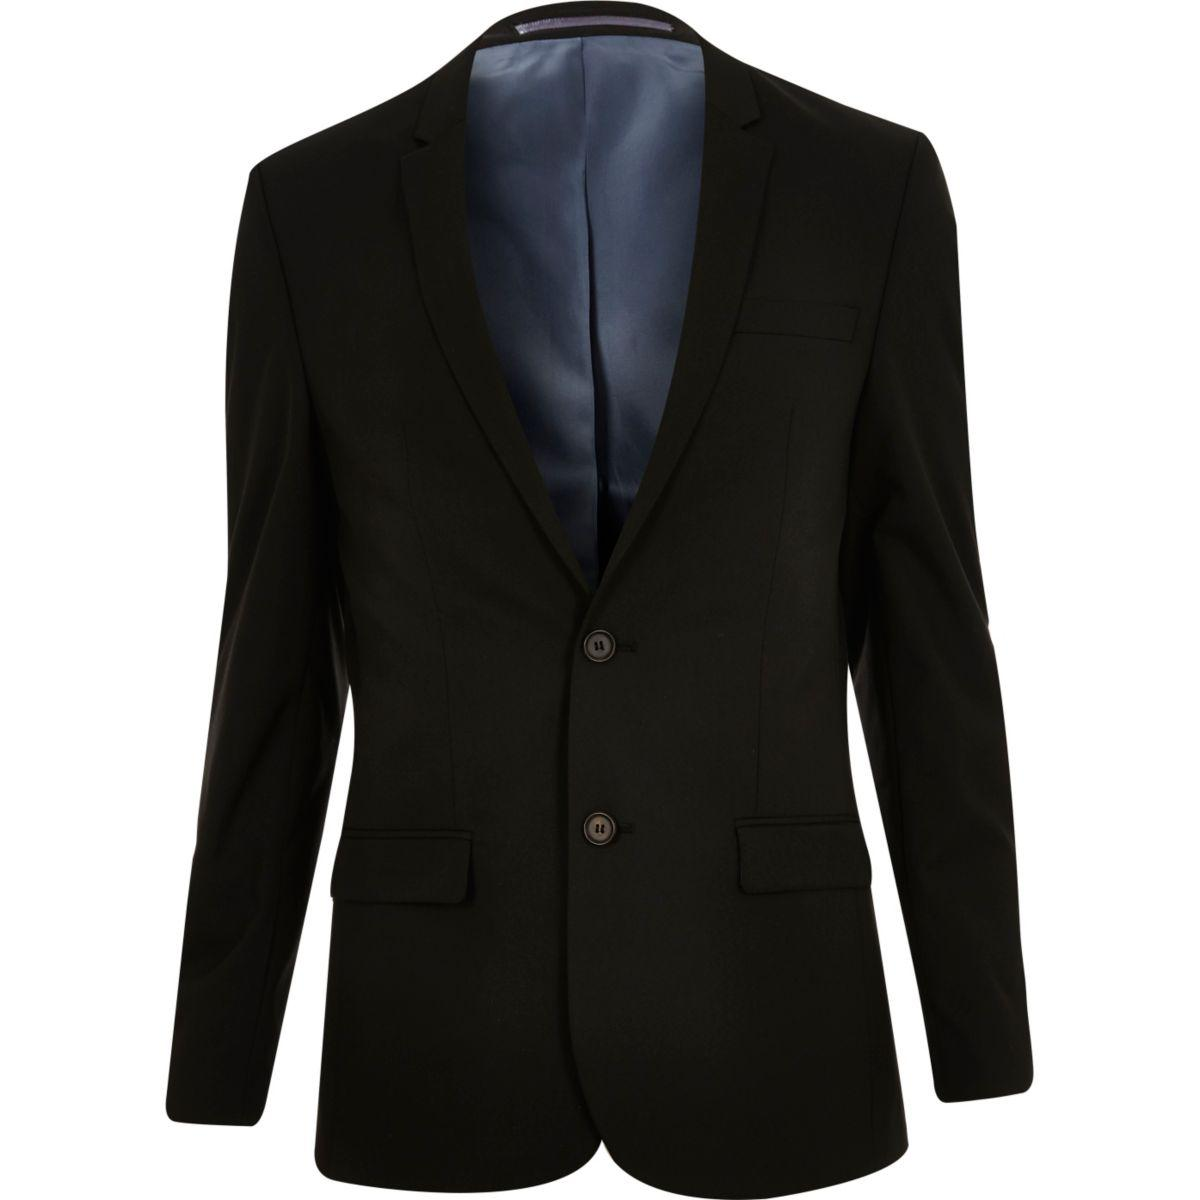 Sport coats resemble and fit similarly to suit jackets, but are designed to be worn without matching slacks. When a suit's too formal and a sport coat too sporty, a blazer is the right call—it's similar to the sport coat but offers added stylish topspin.